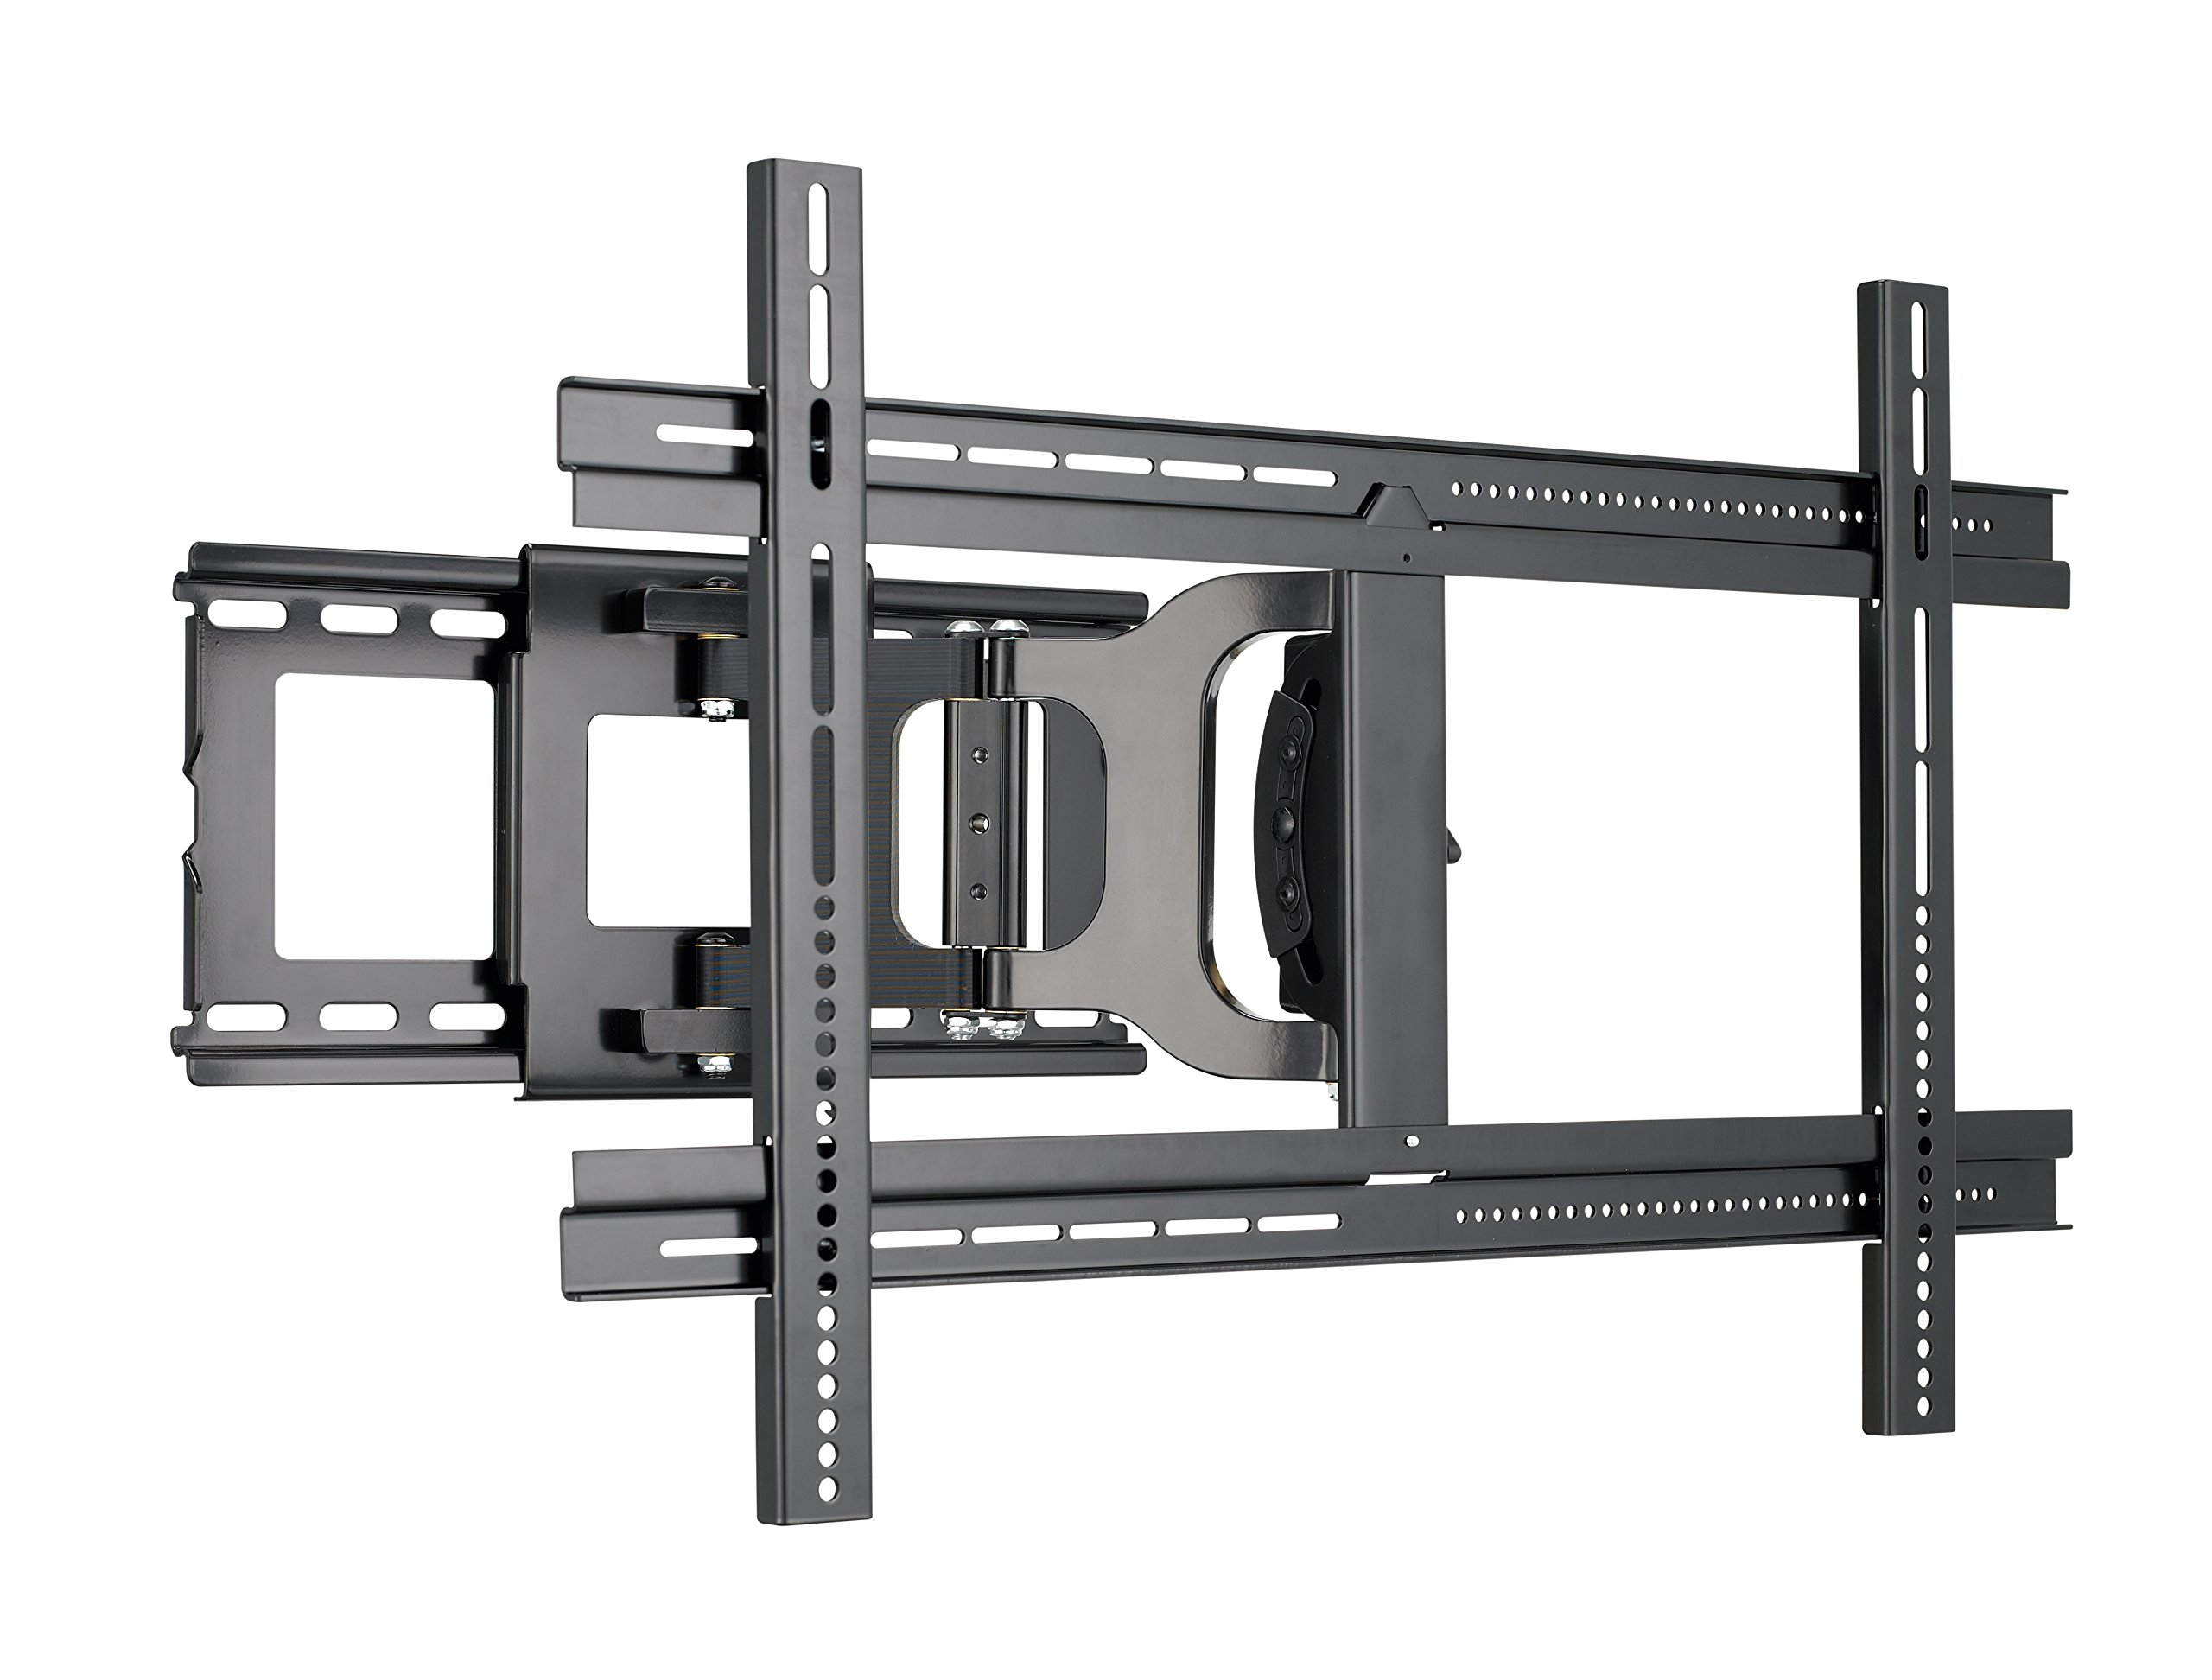 Sanus MLF13-B1 Articulating Universal Wall Mount for 37-80-Inch Screen by Sanus